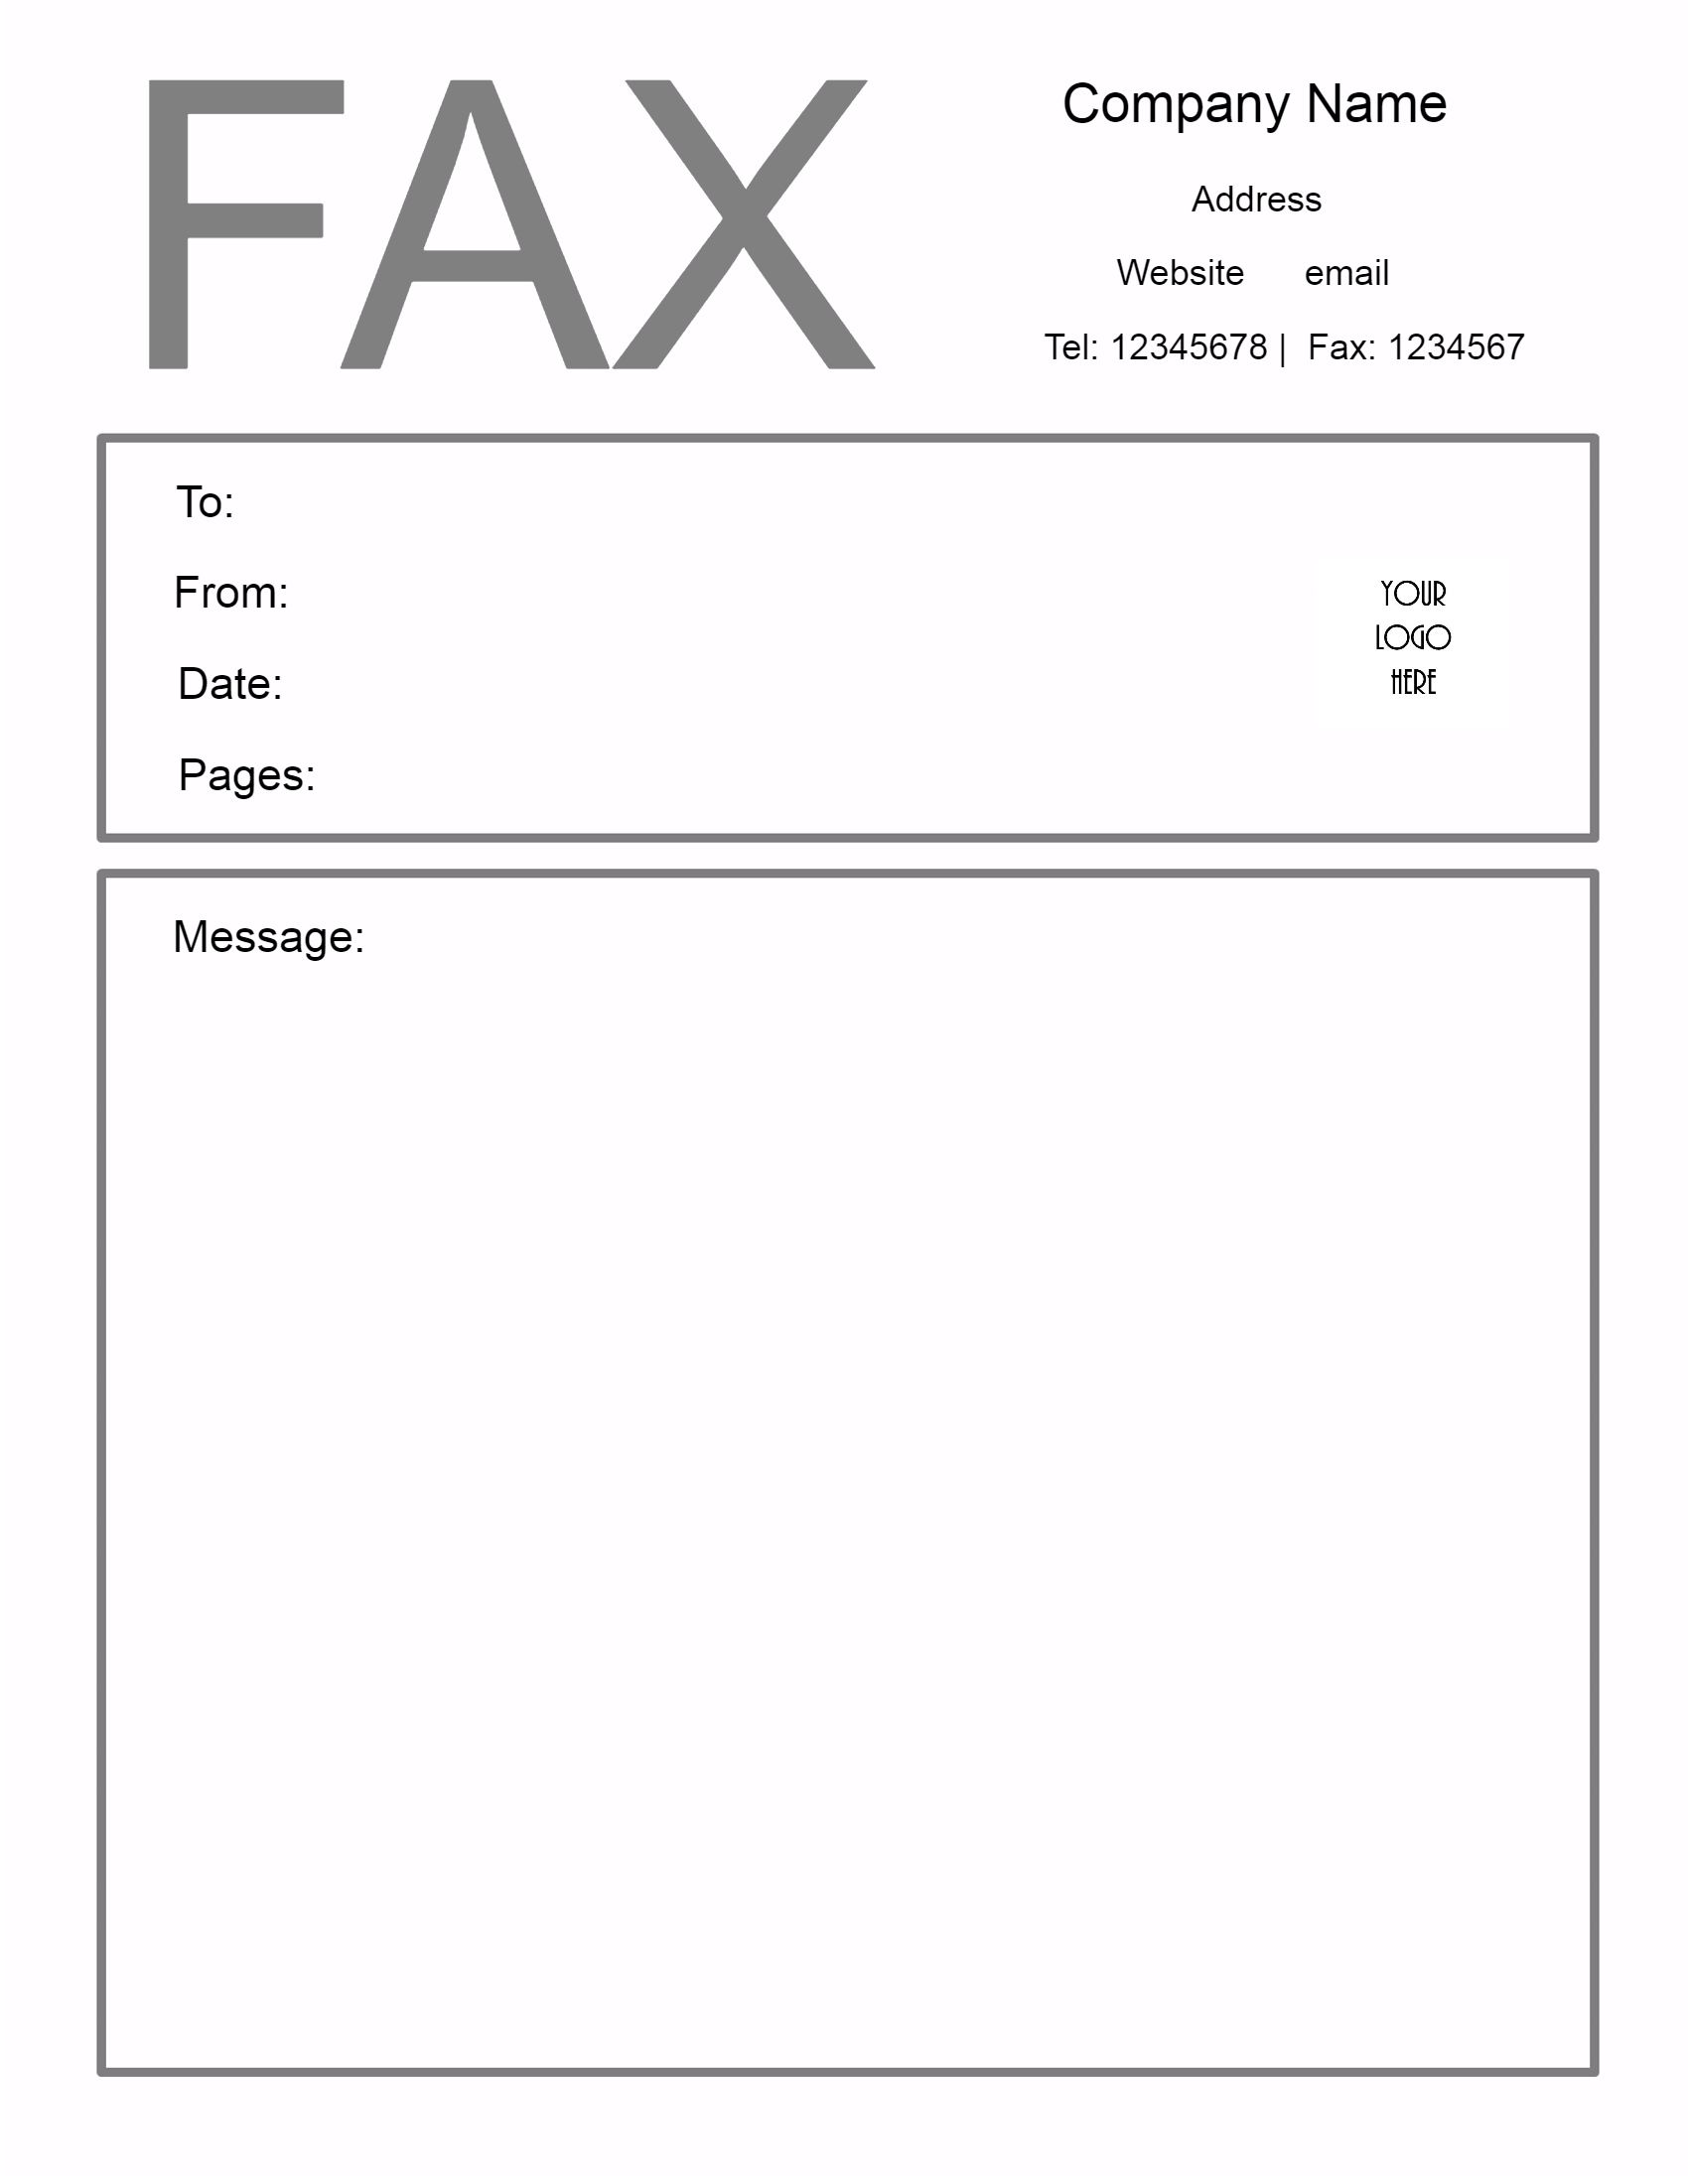 Fax cover page template for resume